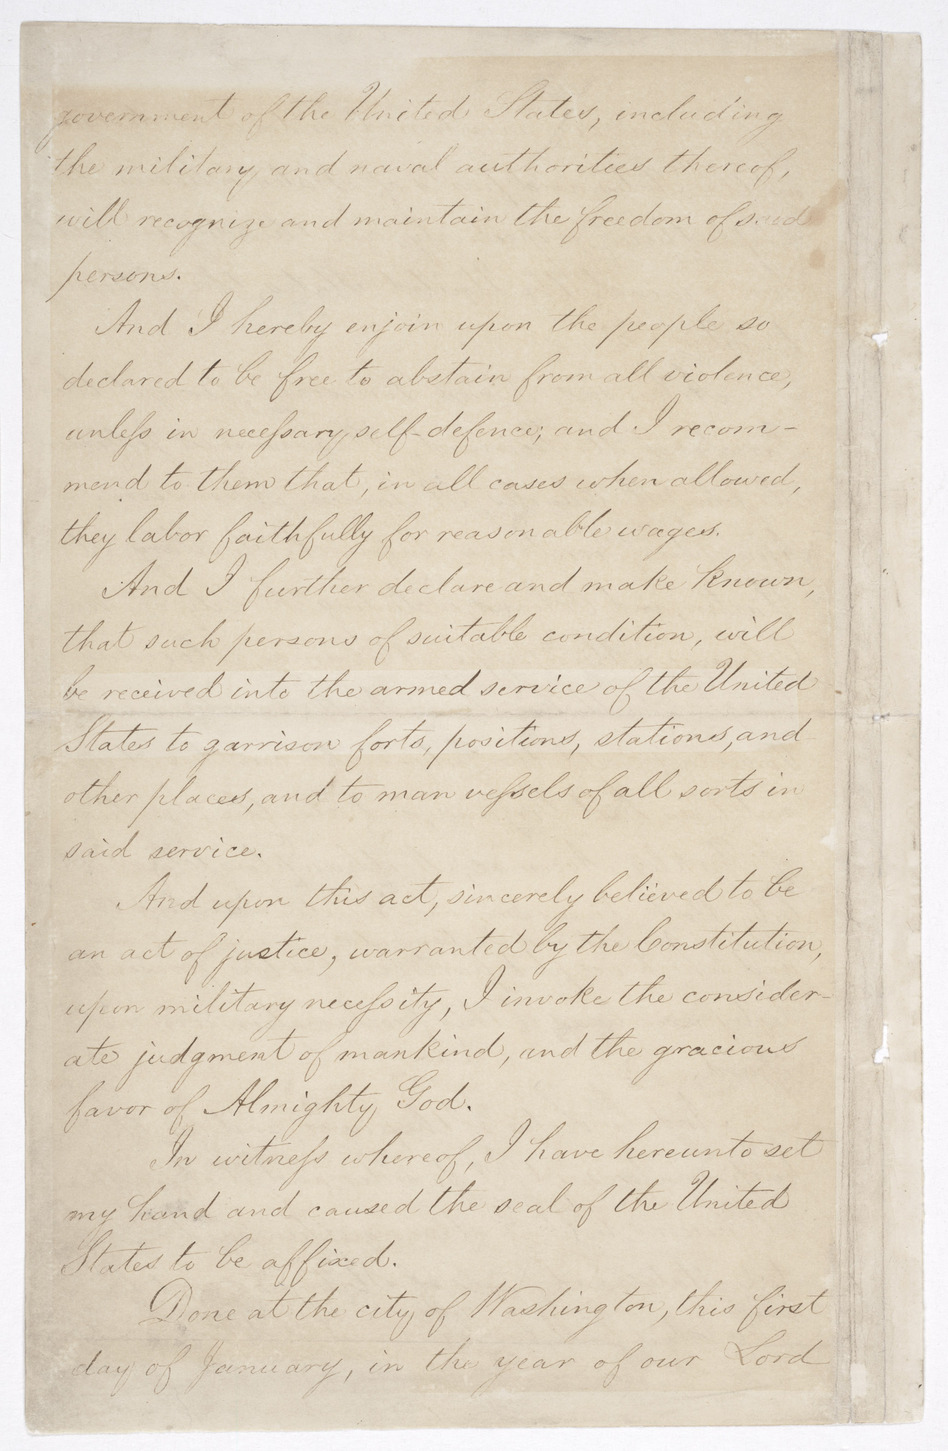 Page 4 of the Emancipation Proclamation. (National Archives and Records)